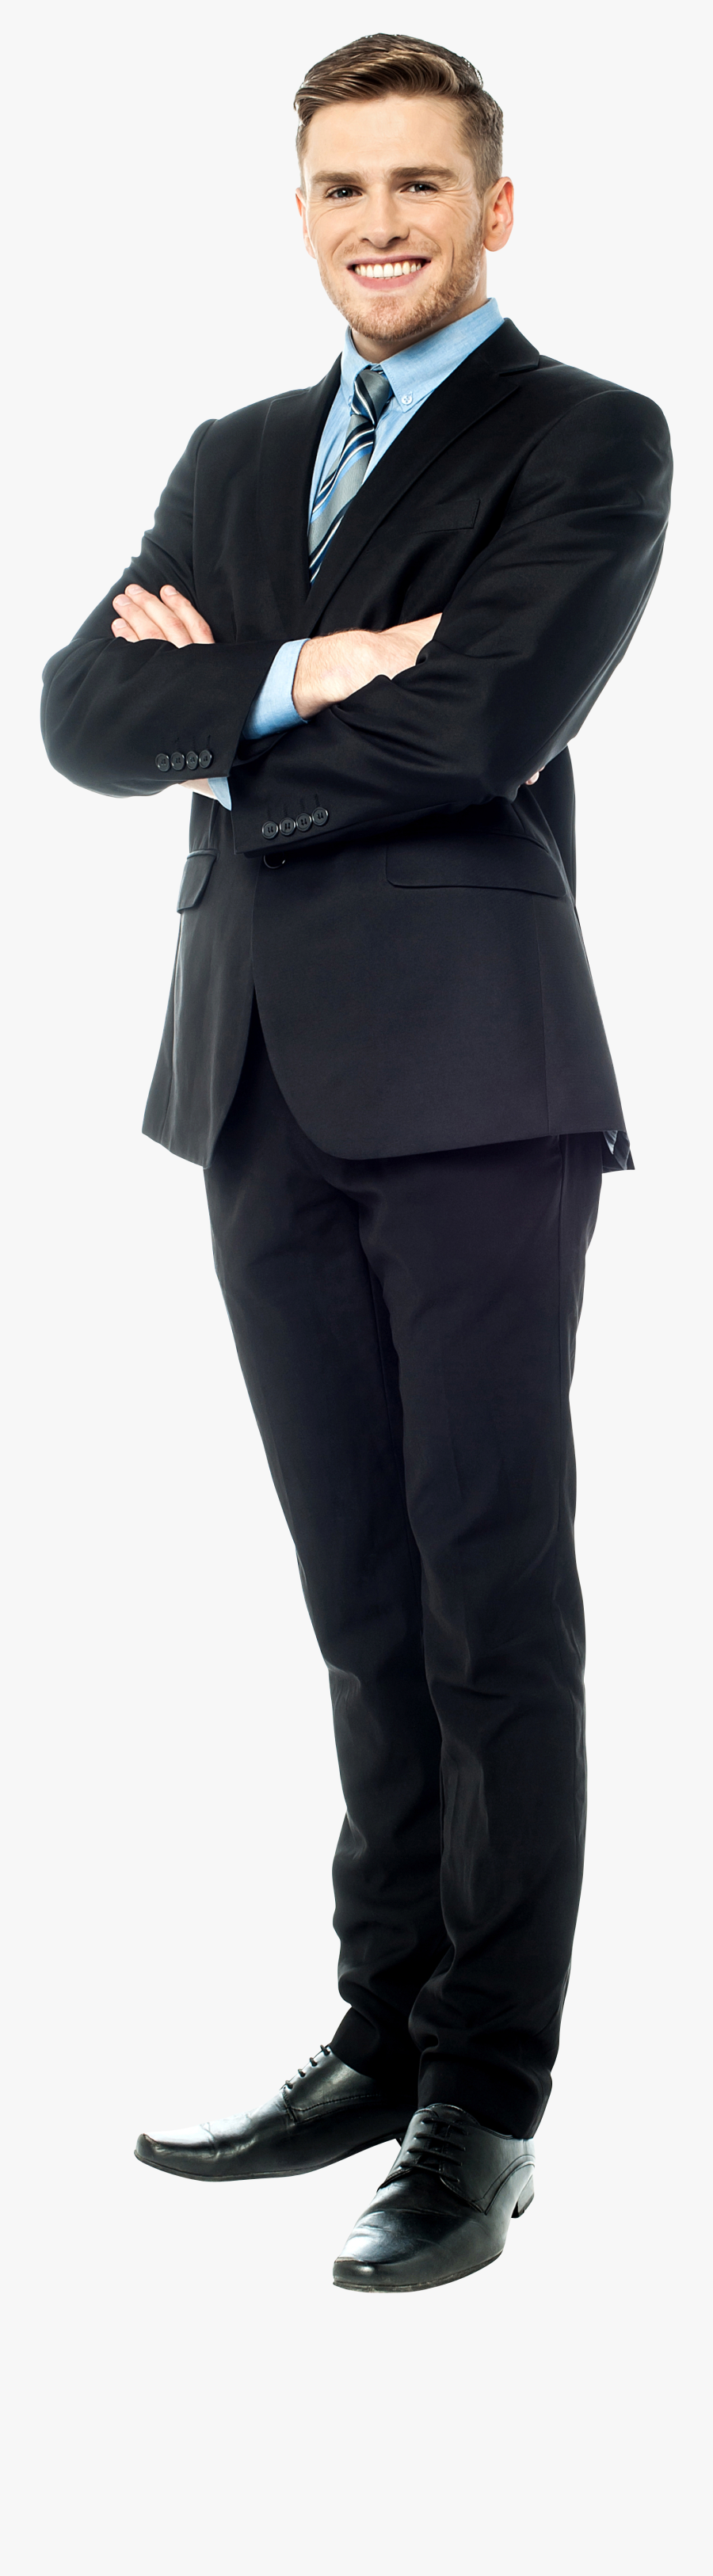 Men In Suit Png Image - Corporate Guy, Transparent Clipart